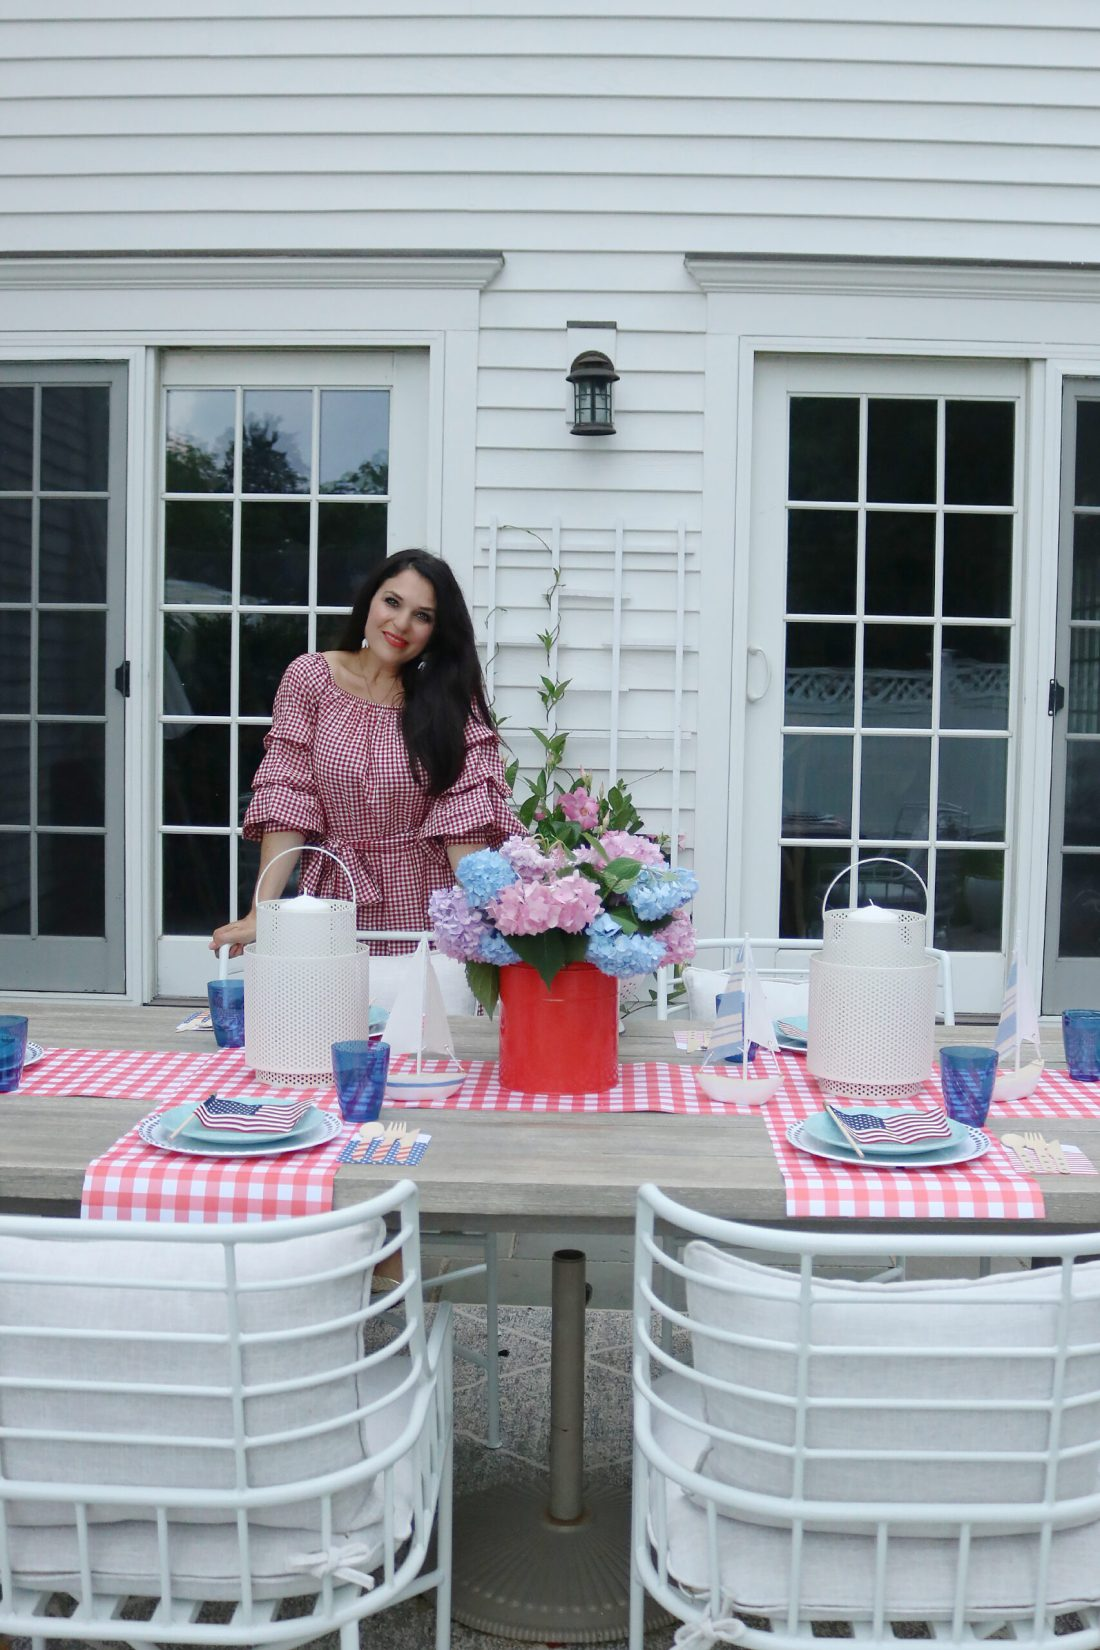 This year host a 4th of July barbecue party and sharing simple budget-friendly decorating tips, 4th of July outfit, red gingham dress, 4th of July entertaining tips, american flag decorations  || Darling Darleen Top CT Lifestyle Blogger #4thofjuly #4thofjulyoutfit